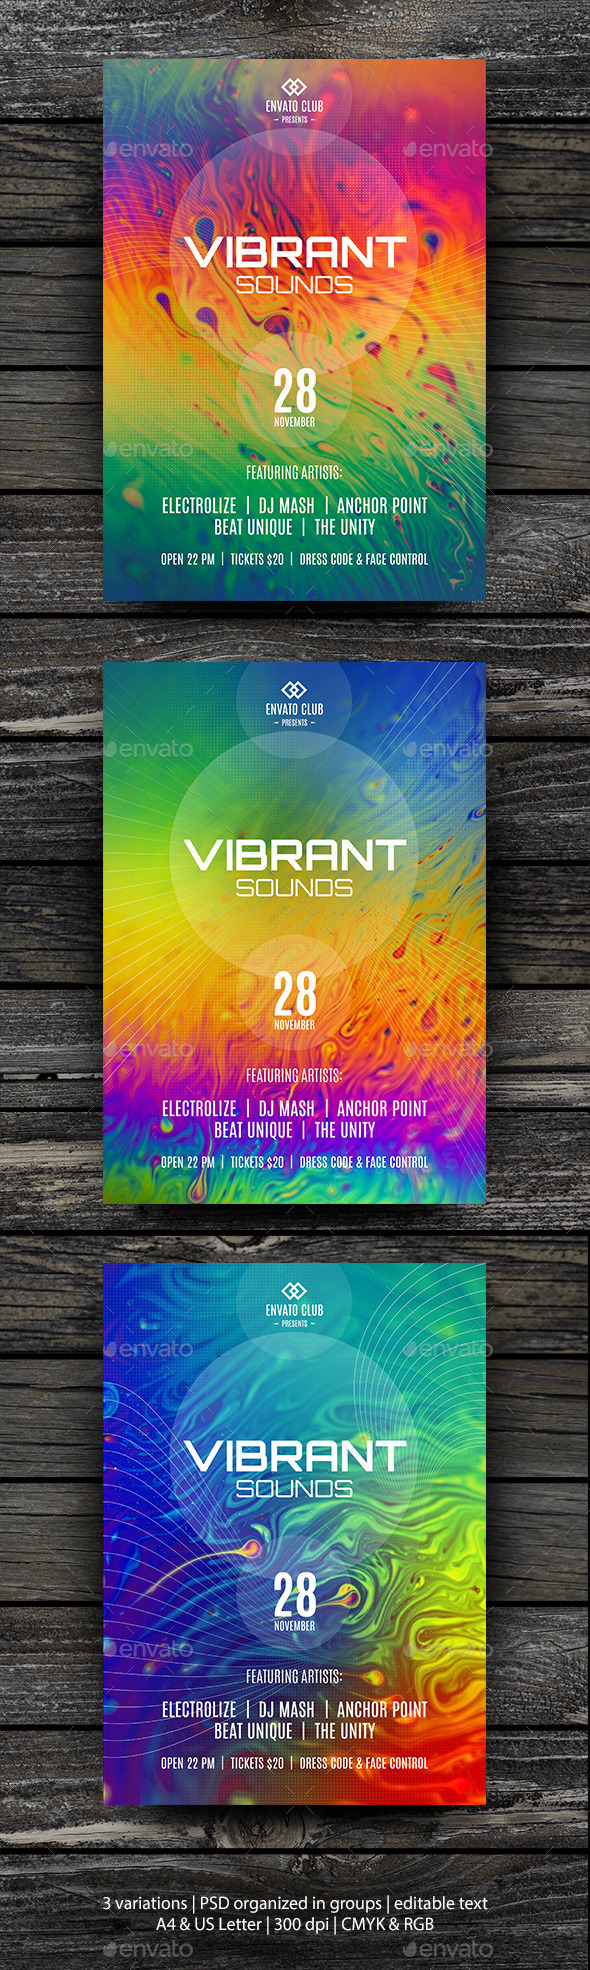 GraphicRiver Vibrant Sounds Party Flyer Template 10593424